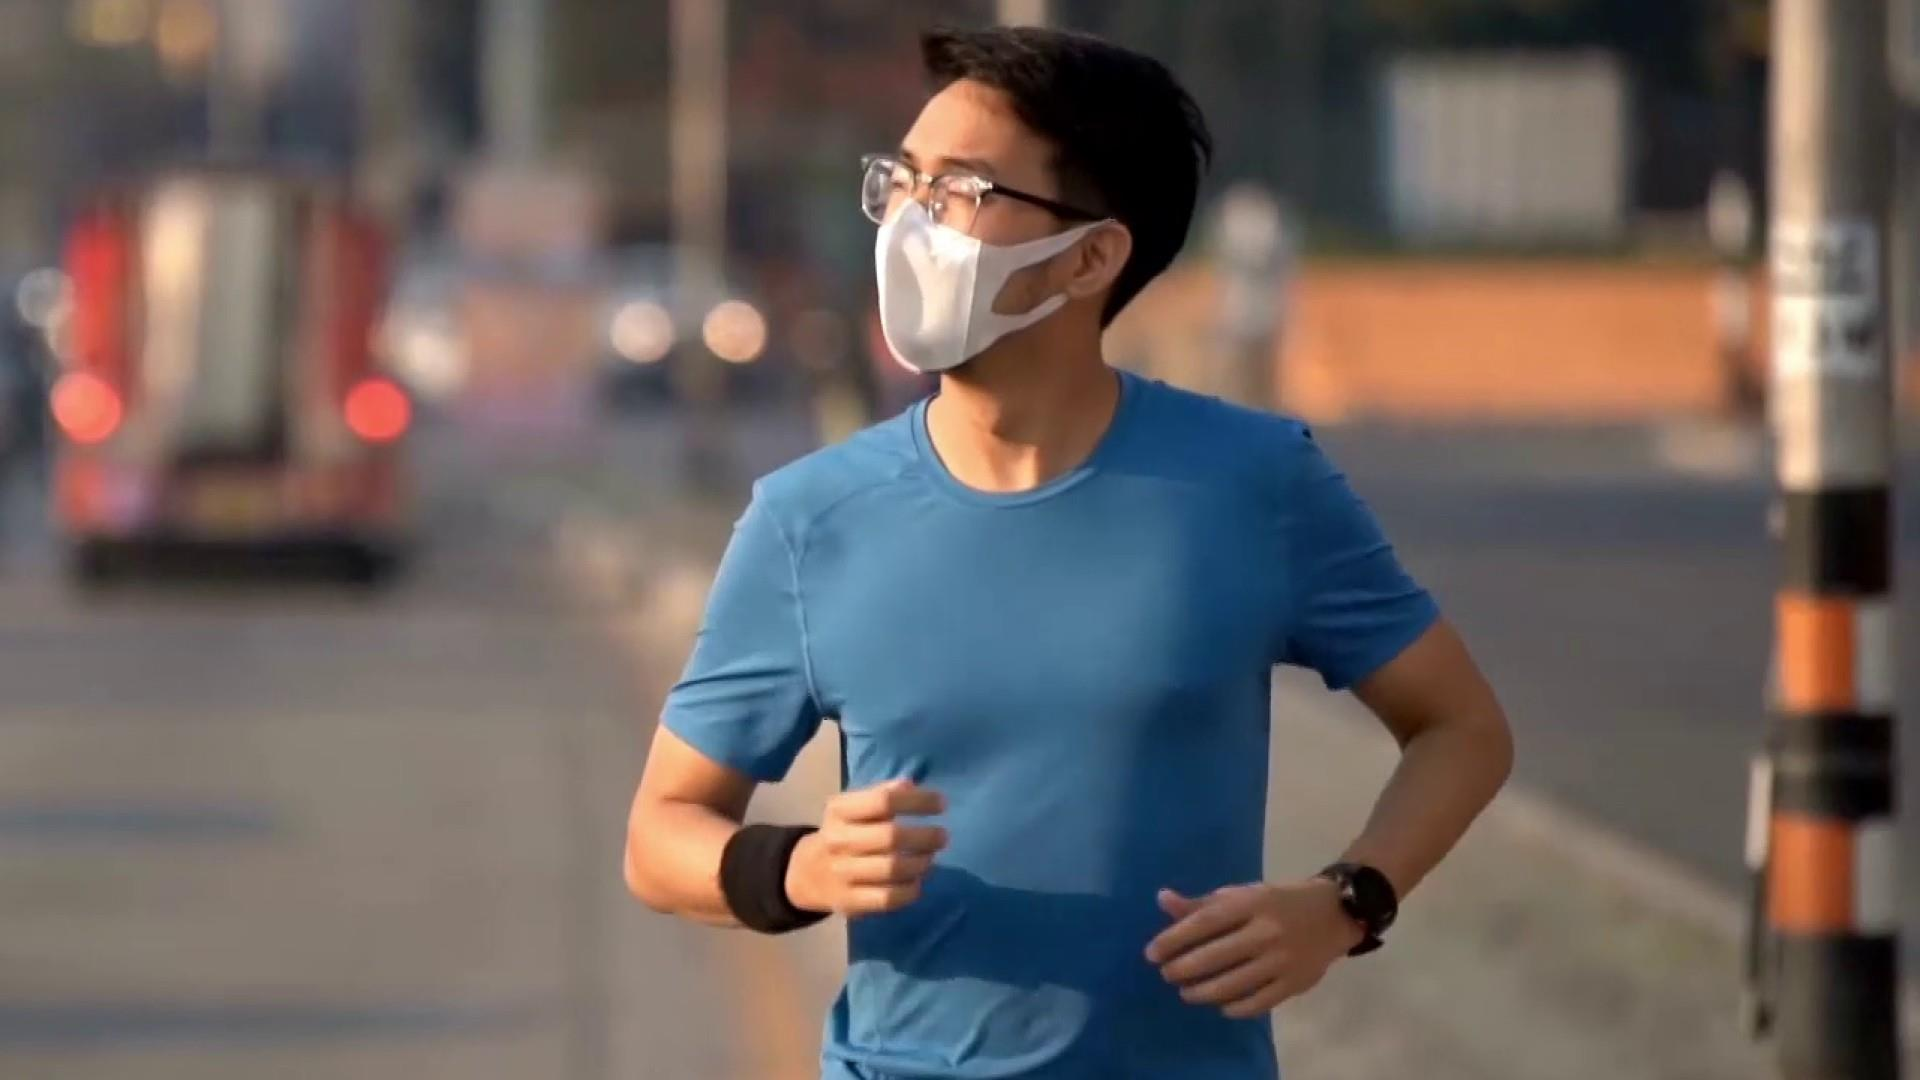 Should you wear a mask while exercising outside?